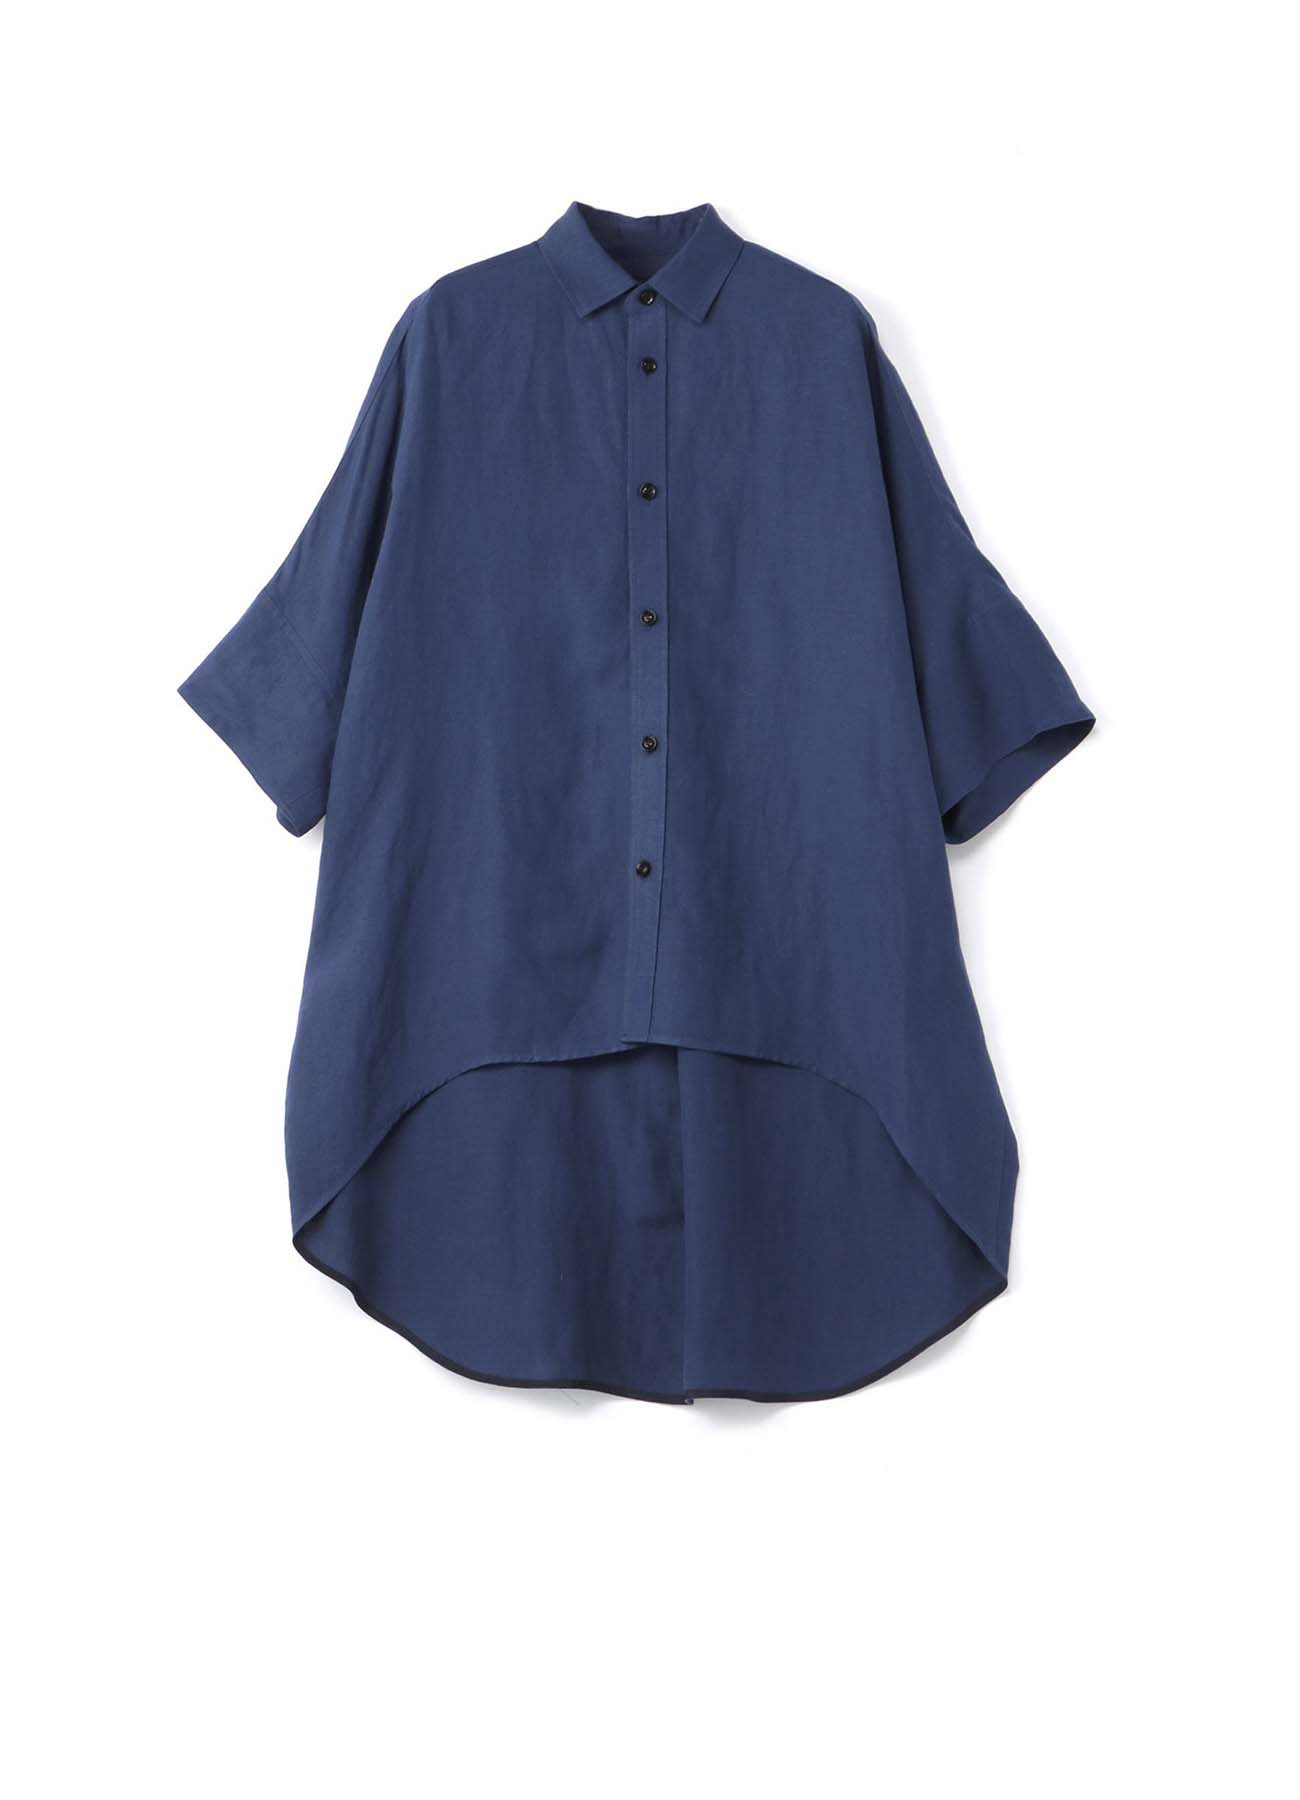 Rayon linen Easy cross Round hem overshirt